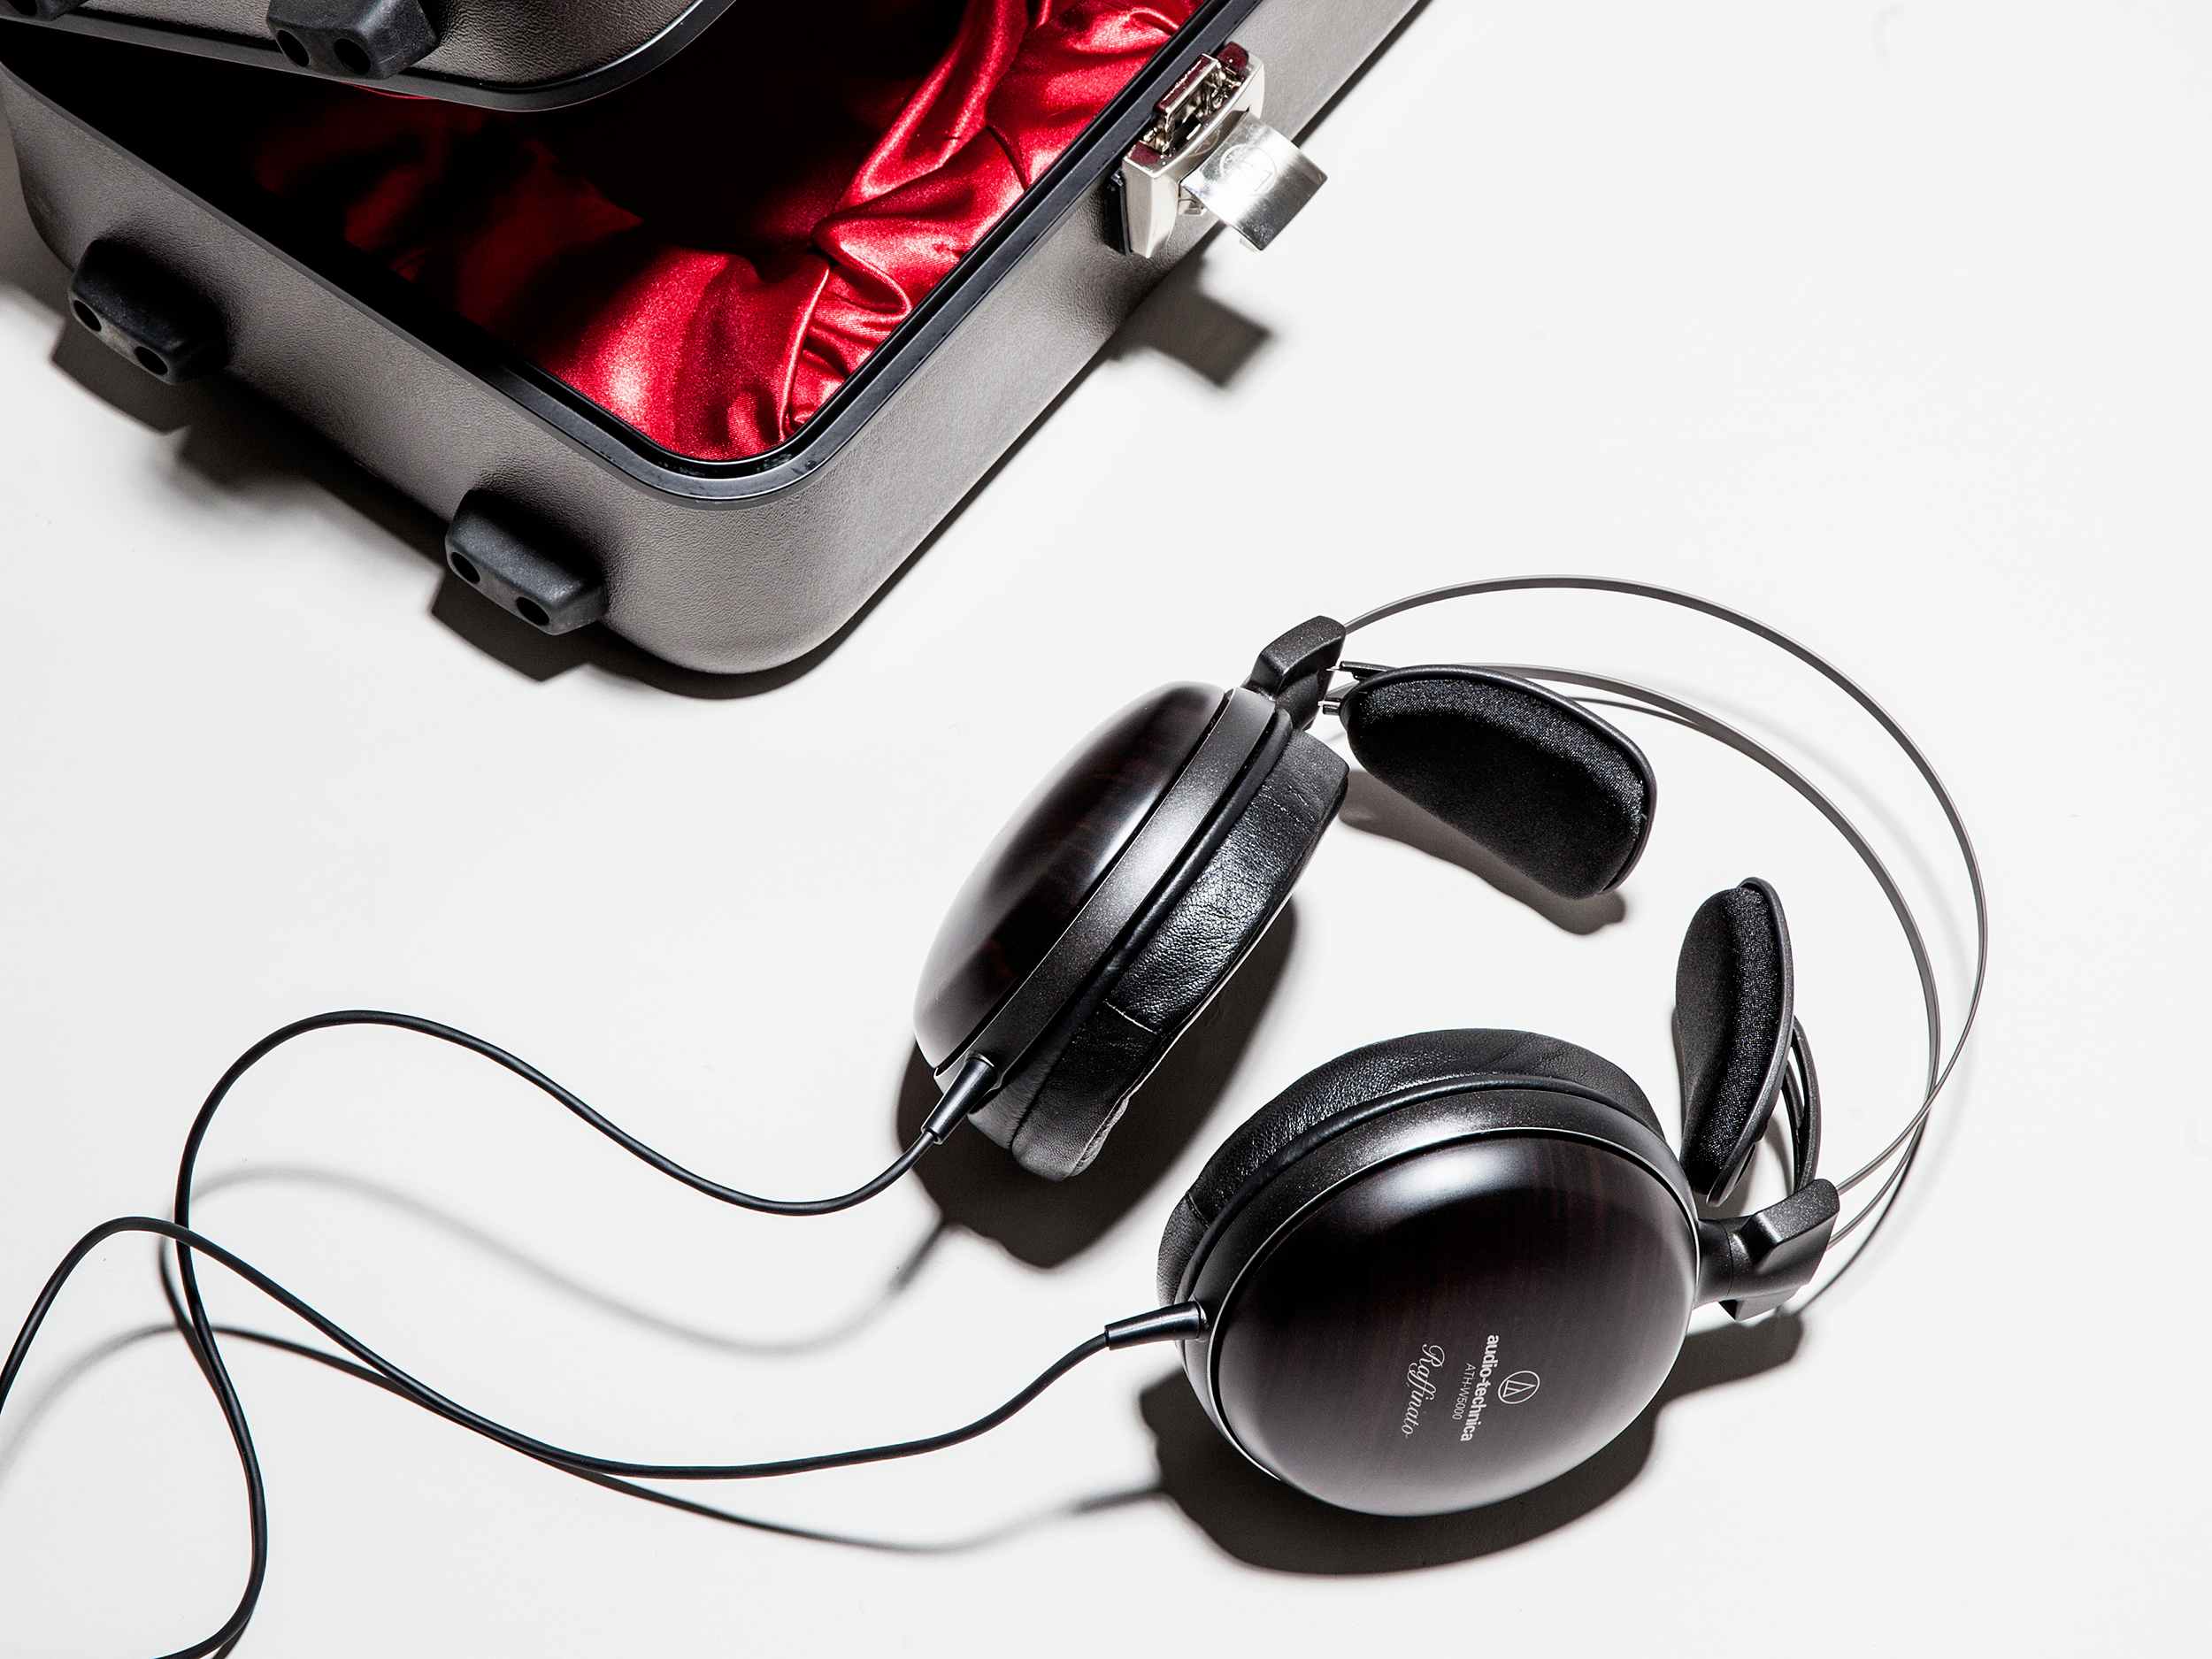 20140507-HEADPHONES-GALLERY-194edit.jpg